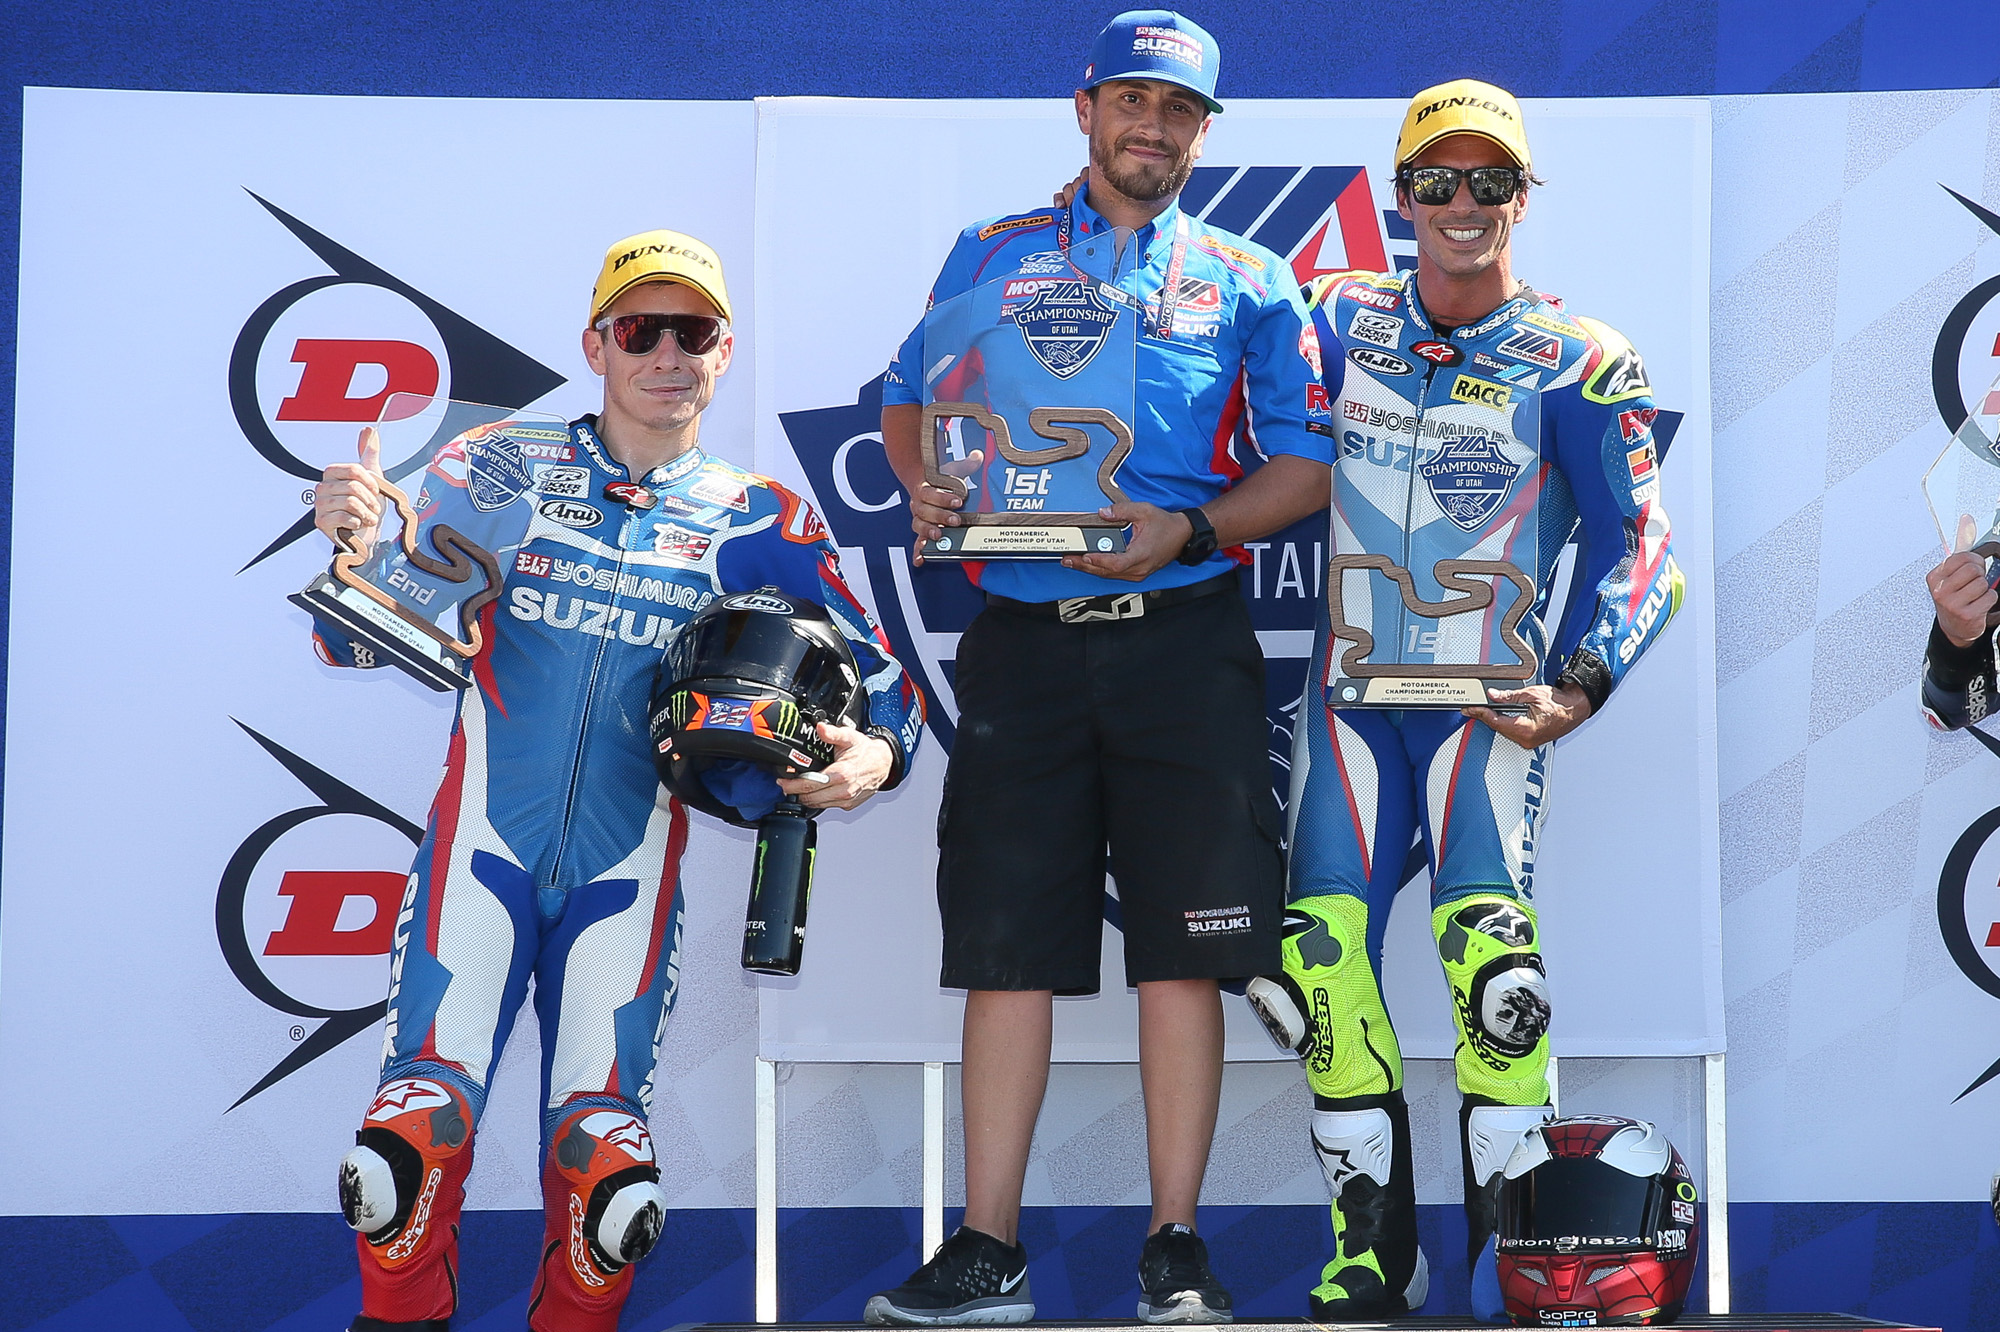 Yoshimura Suzuki Factory Racing's Roger Hayden, mechanic Jon Heinen and Toni Elias celebrate a clean sweep of both MotoAmerica Superbike races in Utah and a new track record in Superpole on the 2017 Suzuki GSX-R1000. (Photo by Brian J. Nelson)